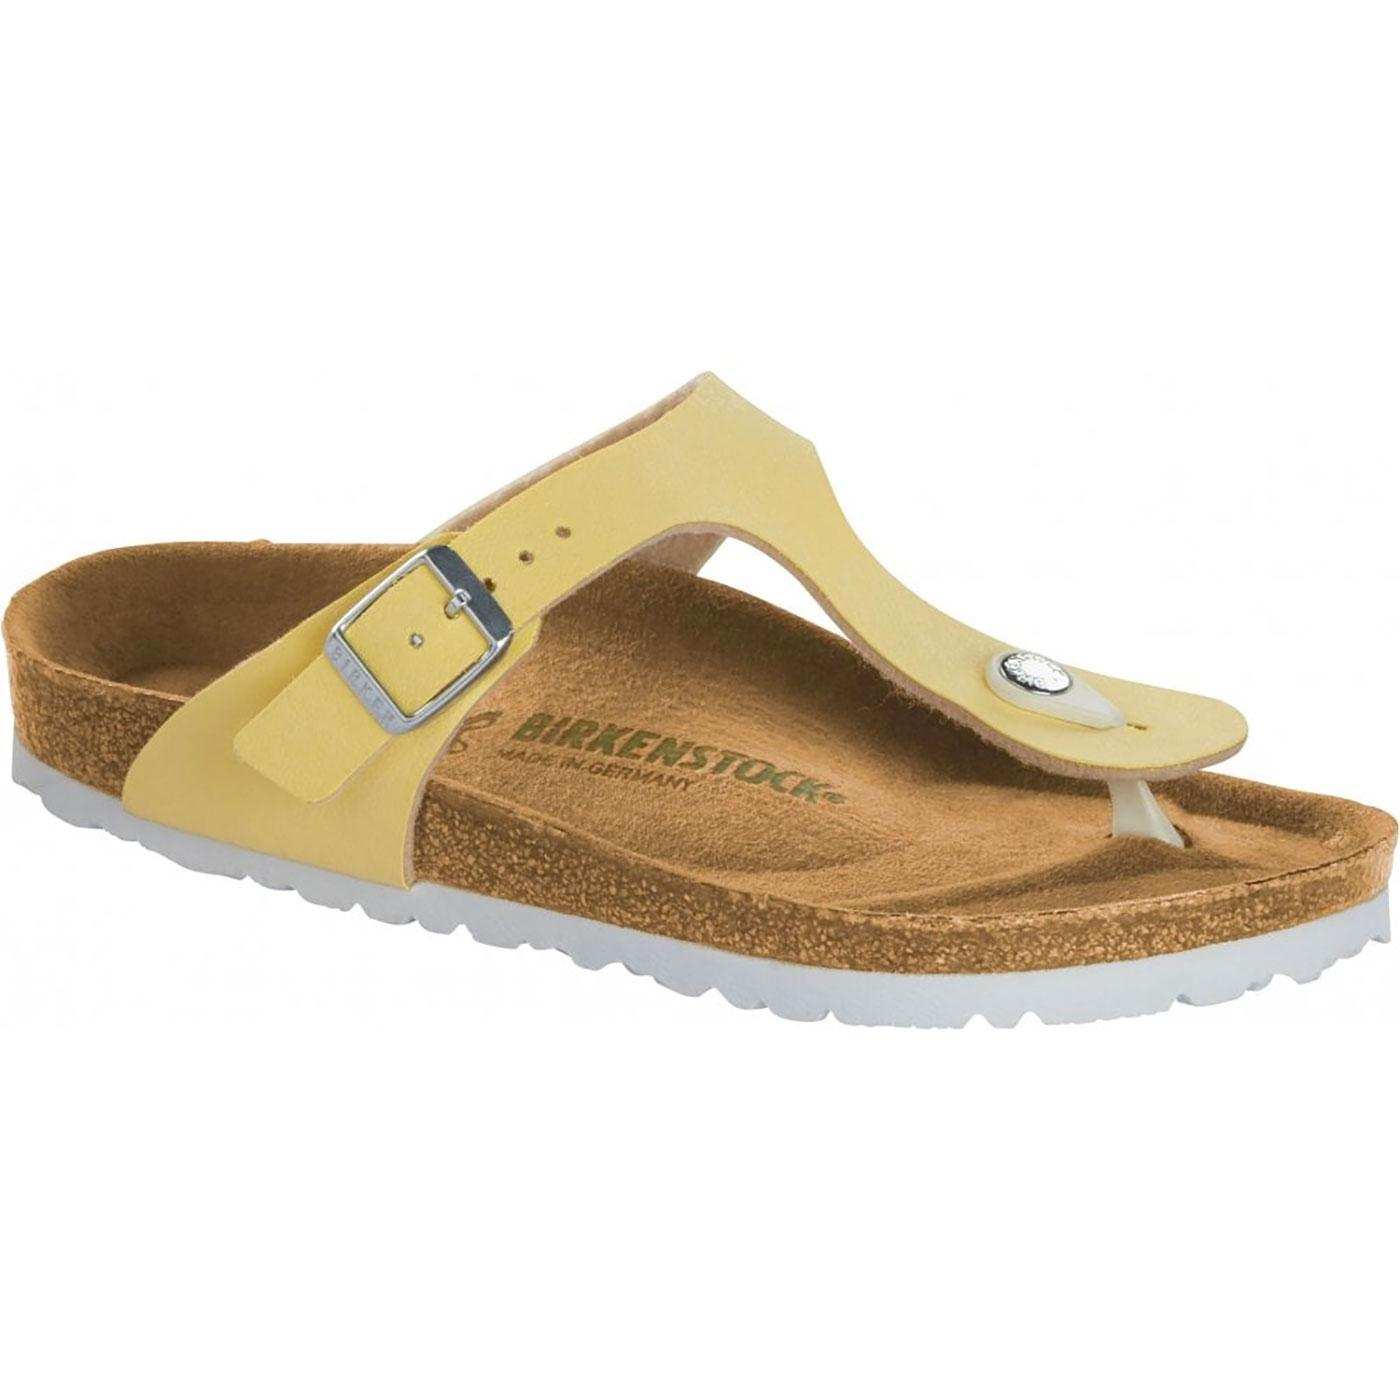 Gizeh Vegan BF BIRKENSTOCK Womens Retro Sandals BV